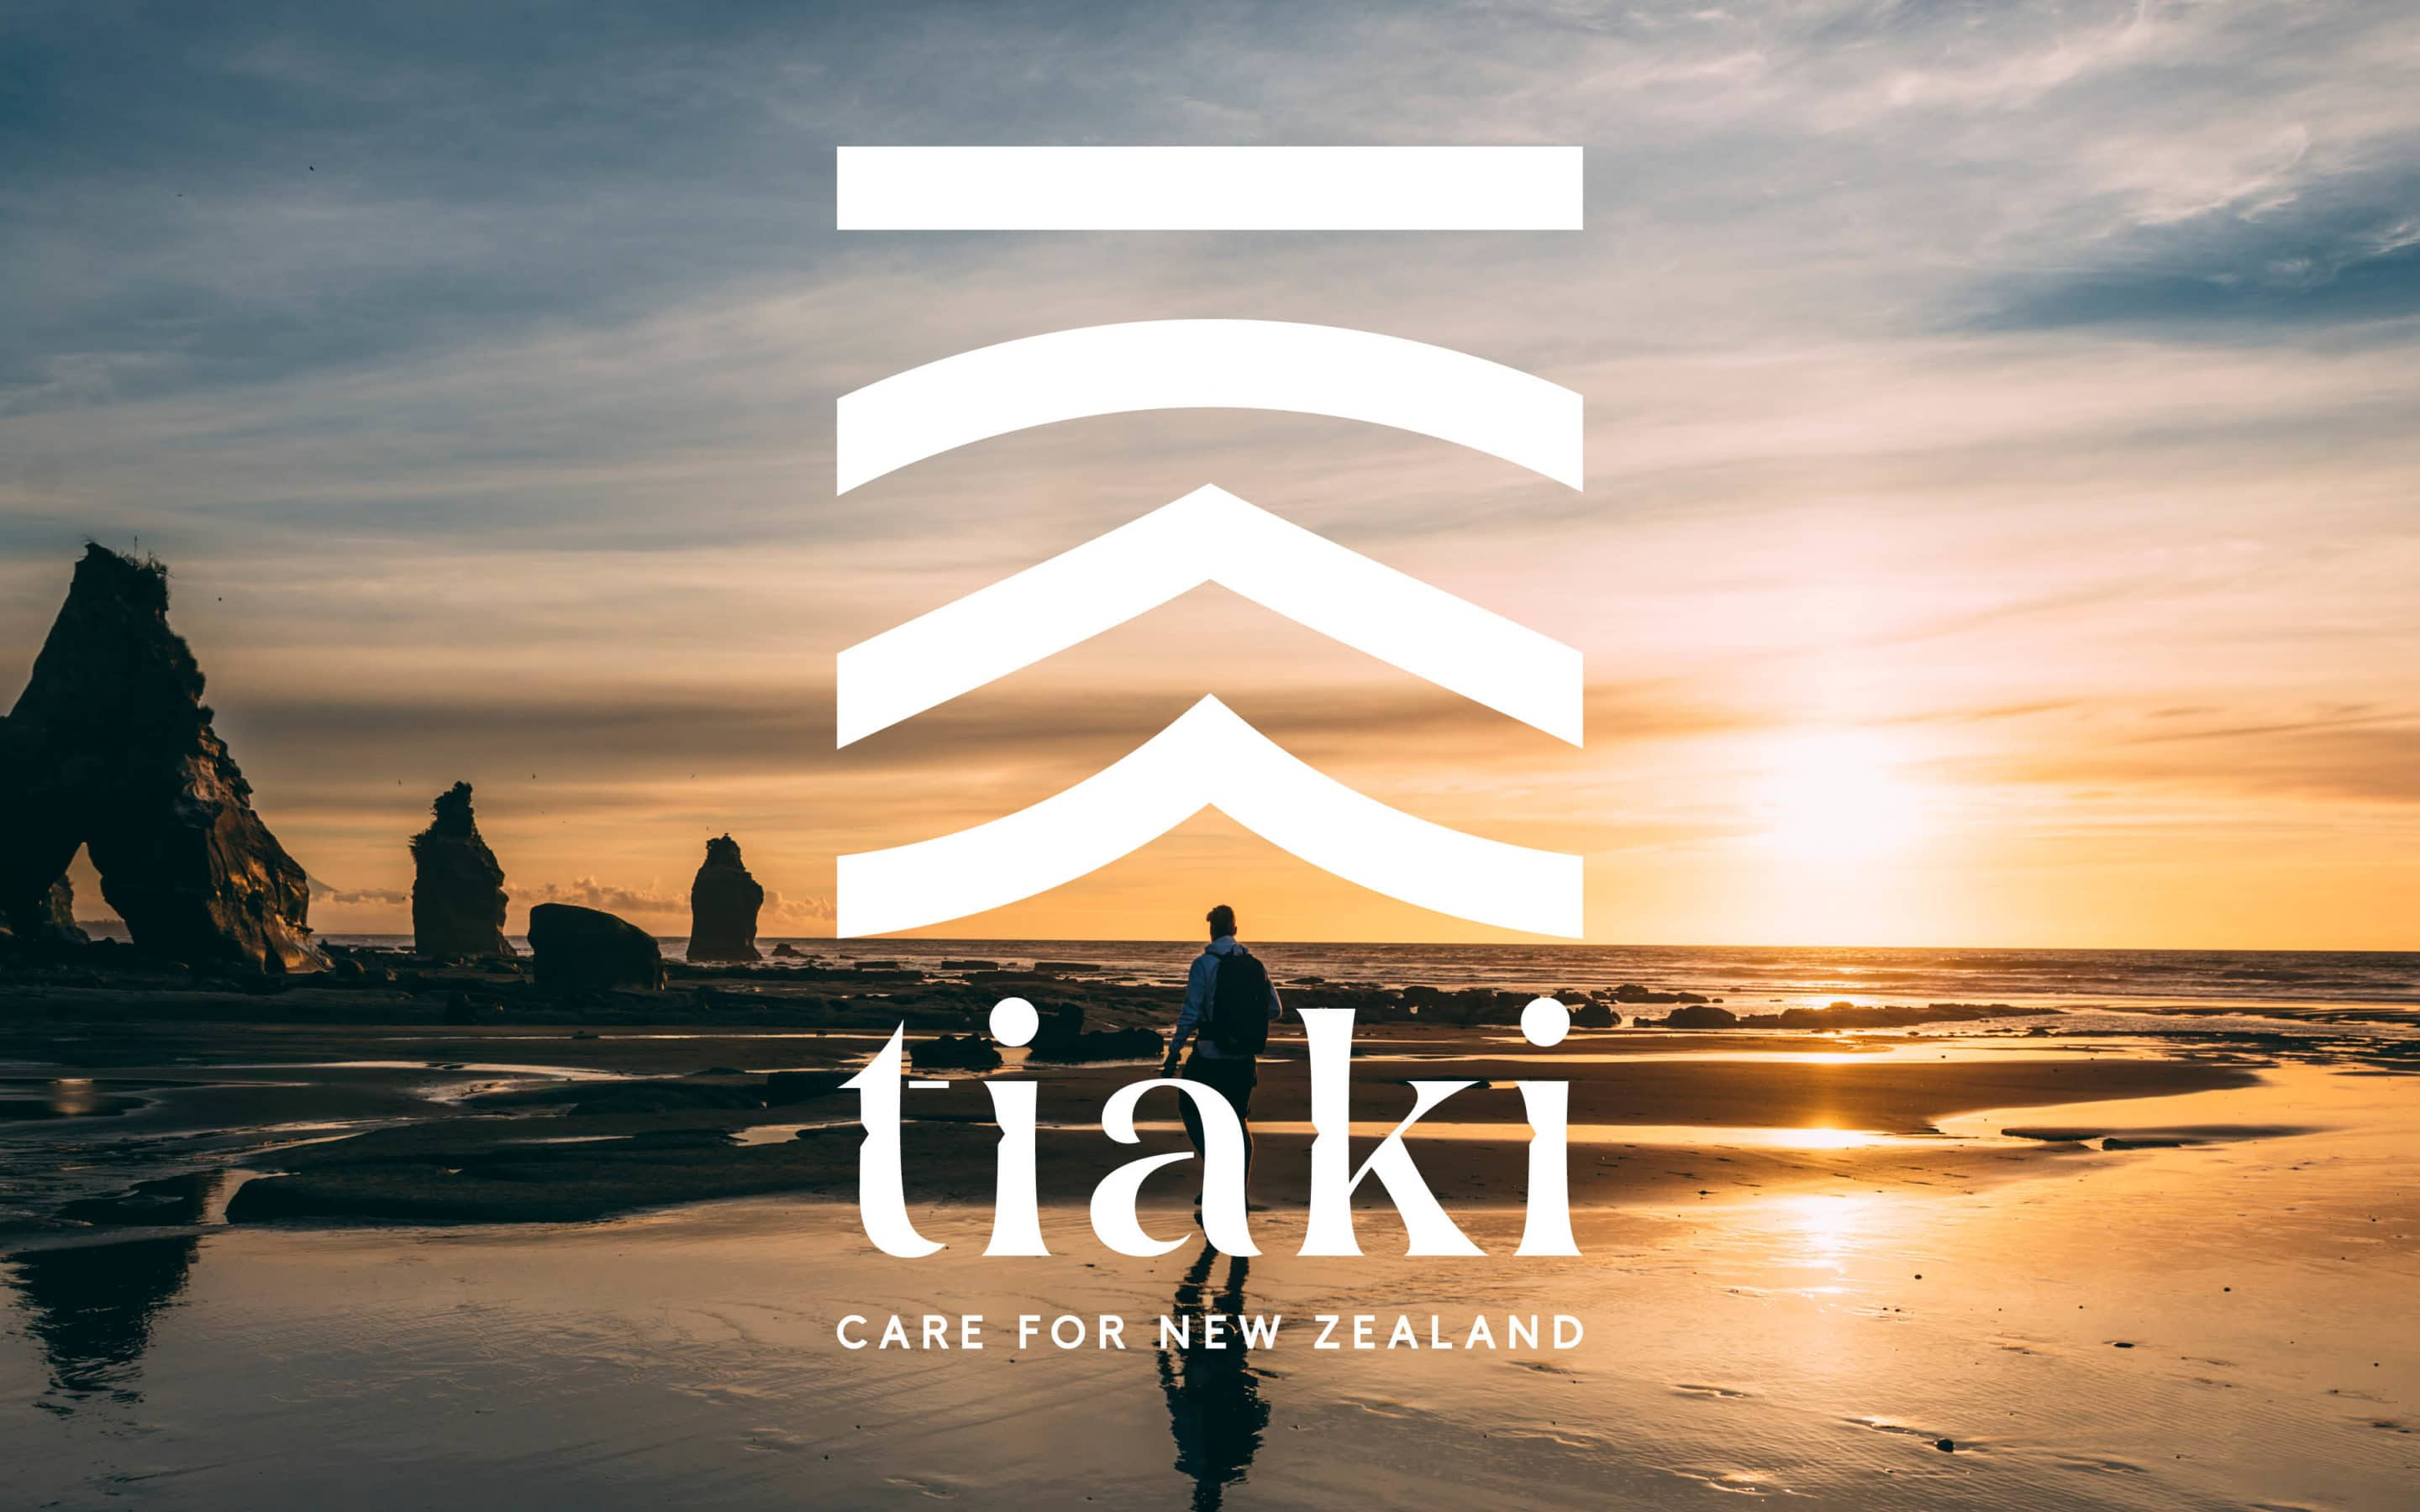 Why we should all join in making the Tiaki promise to care for New Zealand